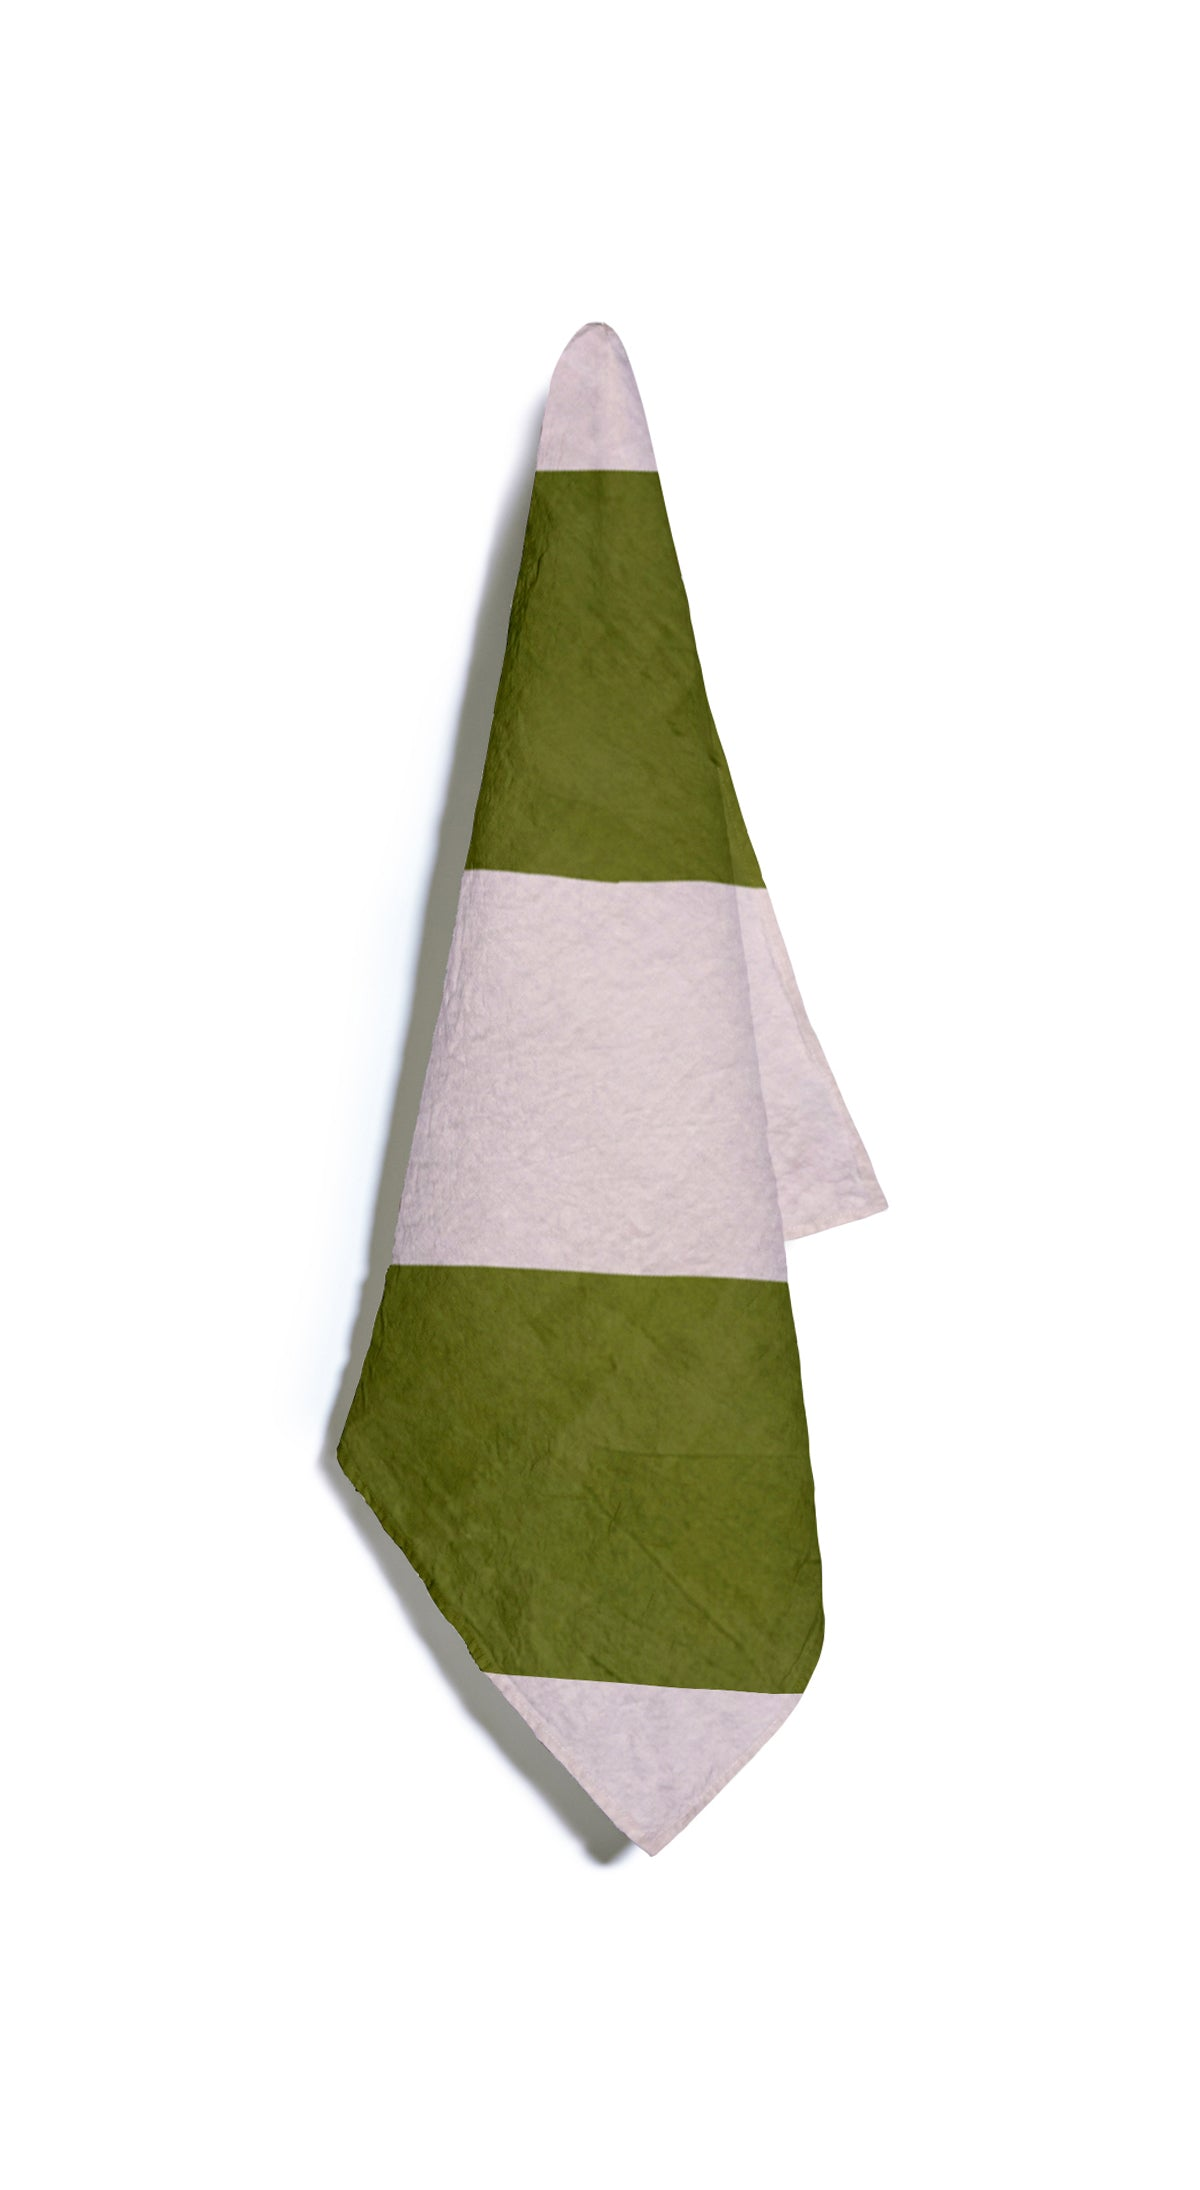 Stripe Linen Napkin in Avocado Green and Pale Pink